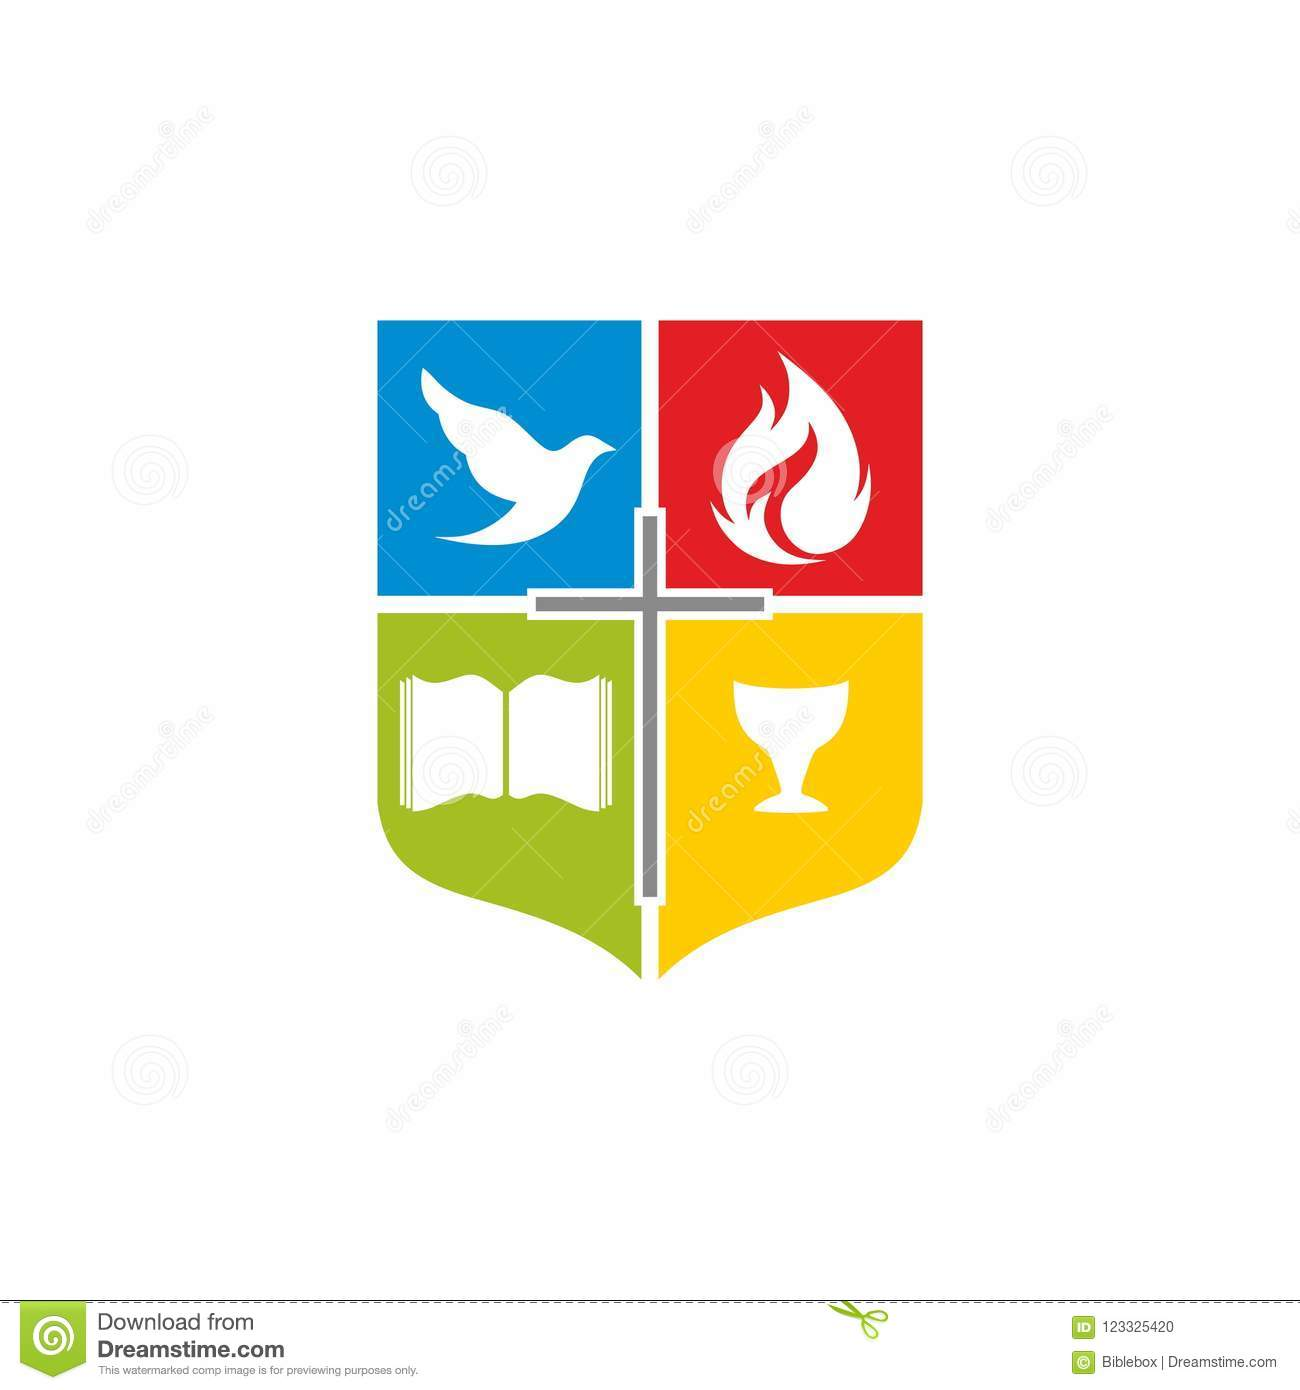 Church logo the cross of jesus the open bible the cup of christ download church logo the cross of jesus the open bible the cup of altavistaventures Choice Image